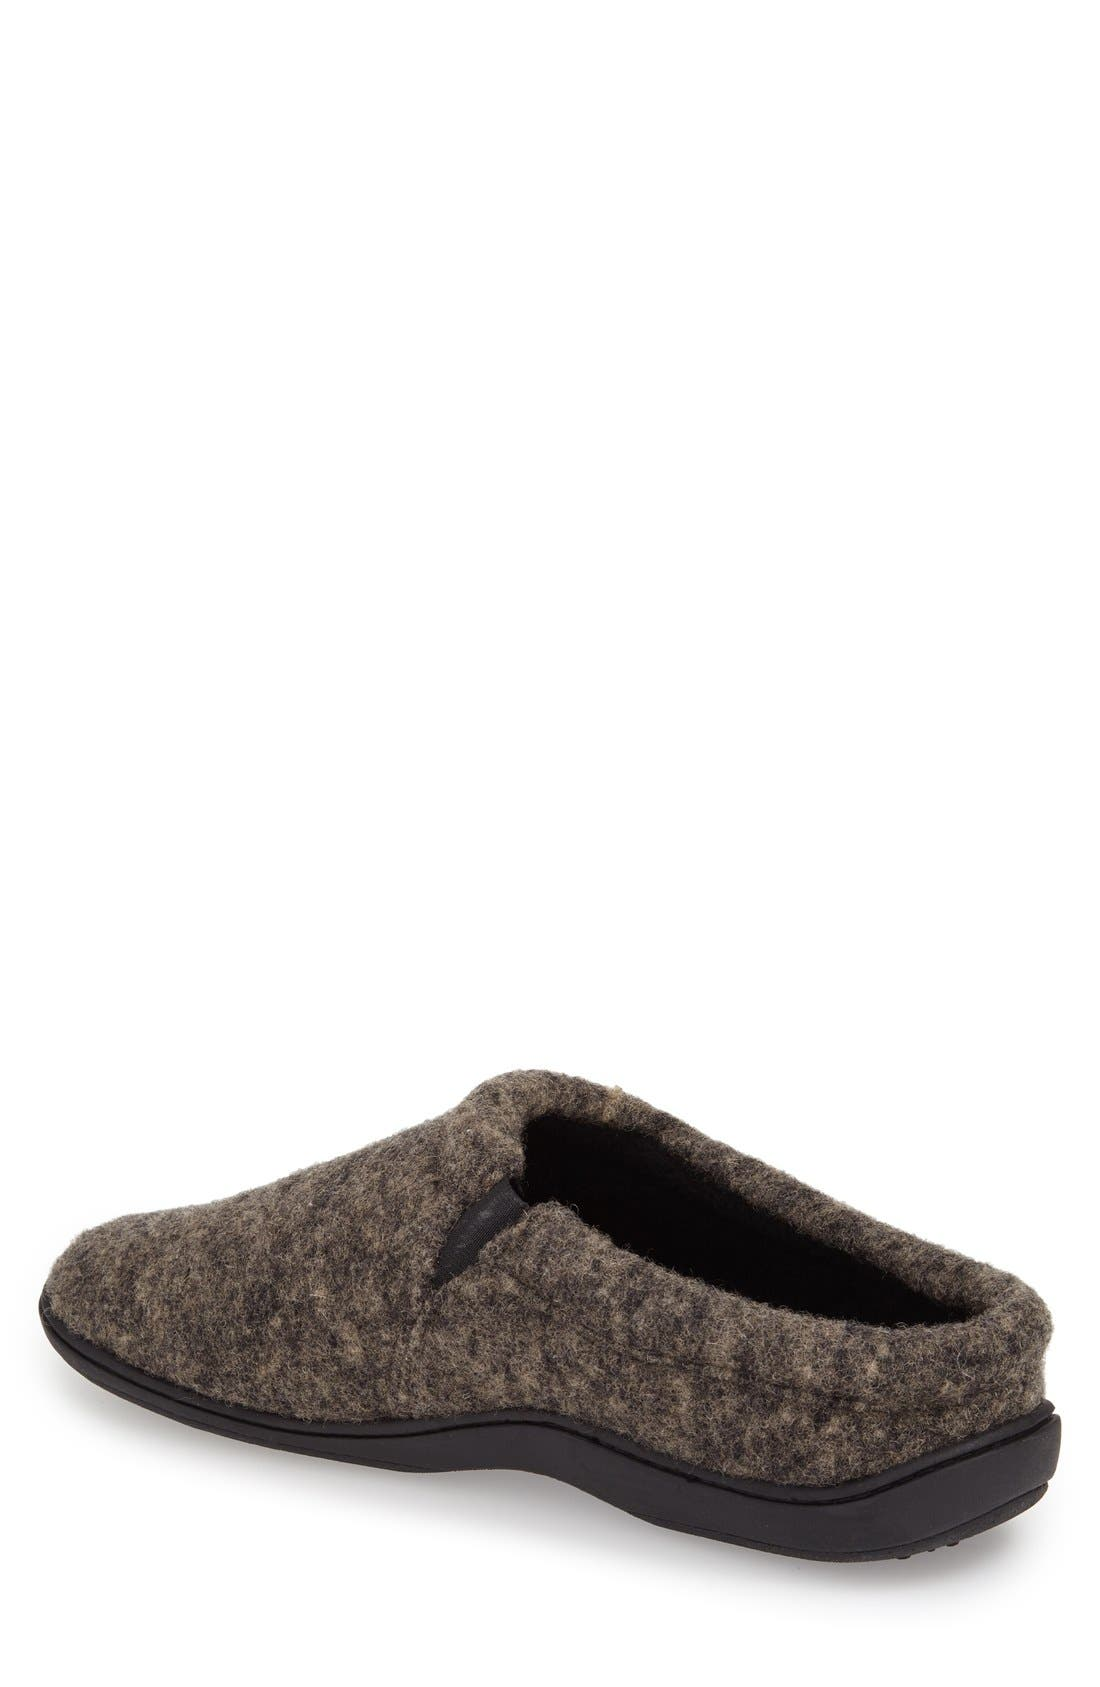 'Digby' Slipper,                             Alternate thumbnail 2, color,                             HEATHER GREIGE